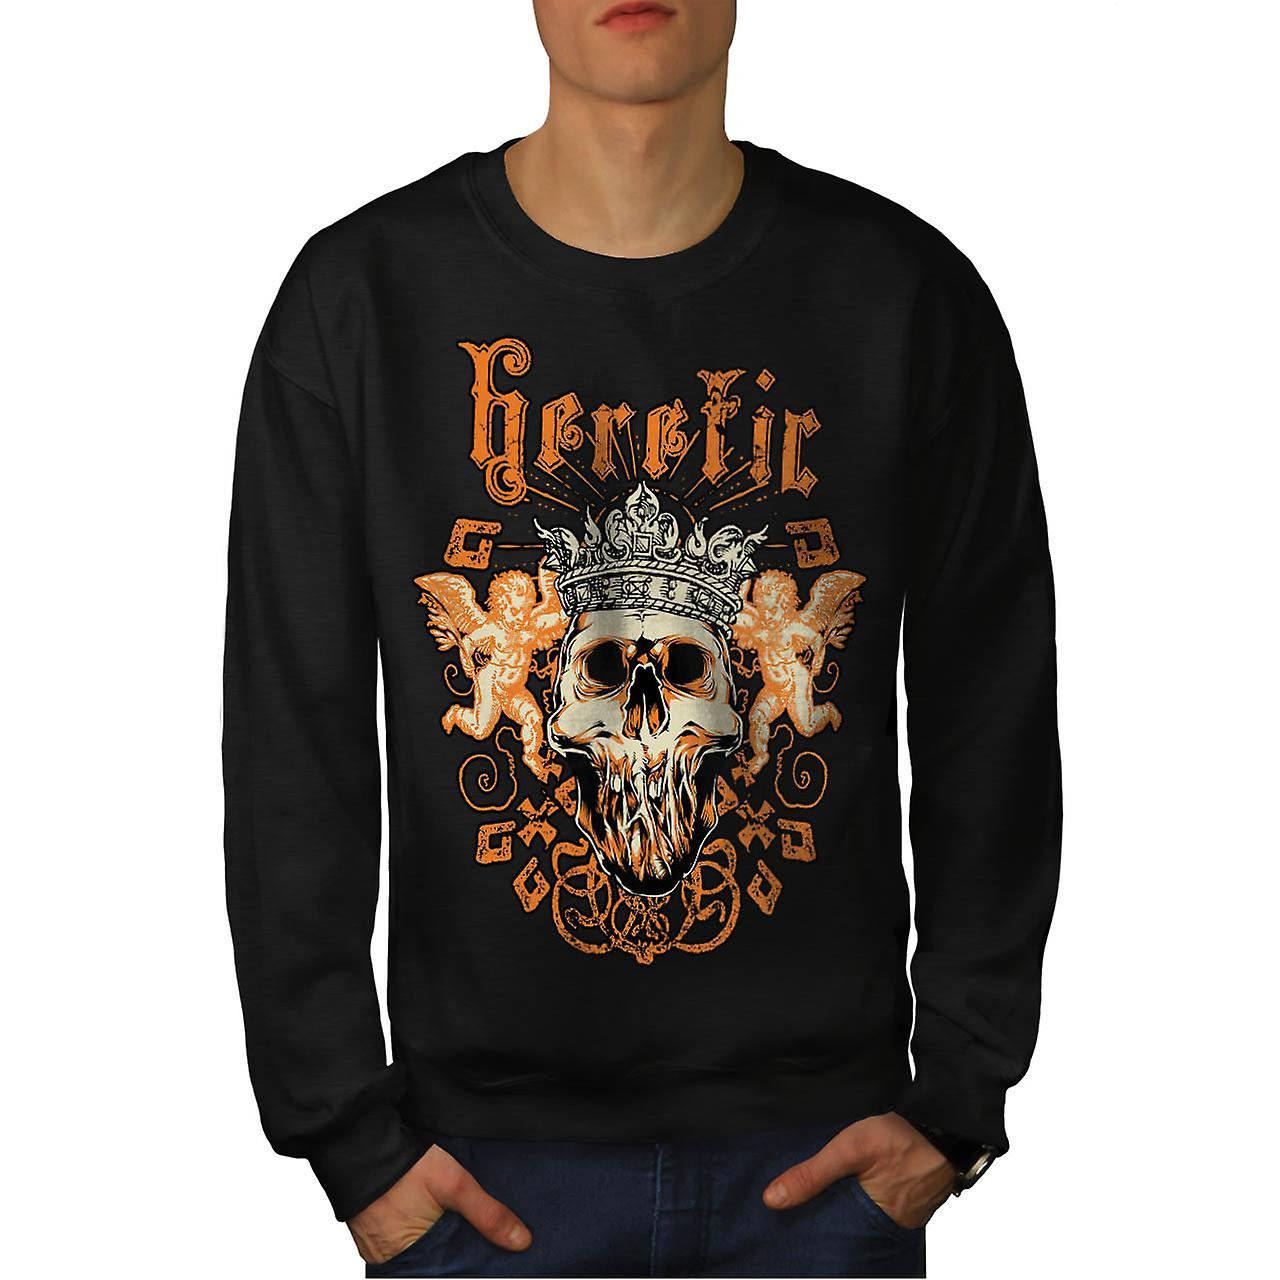 Kjetter Monster King Skull raseri menn svart Sweatshirt | Wellcoda